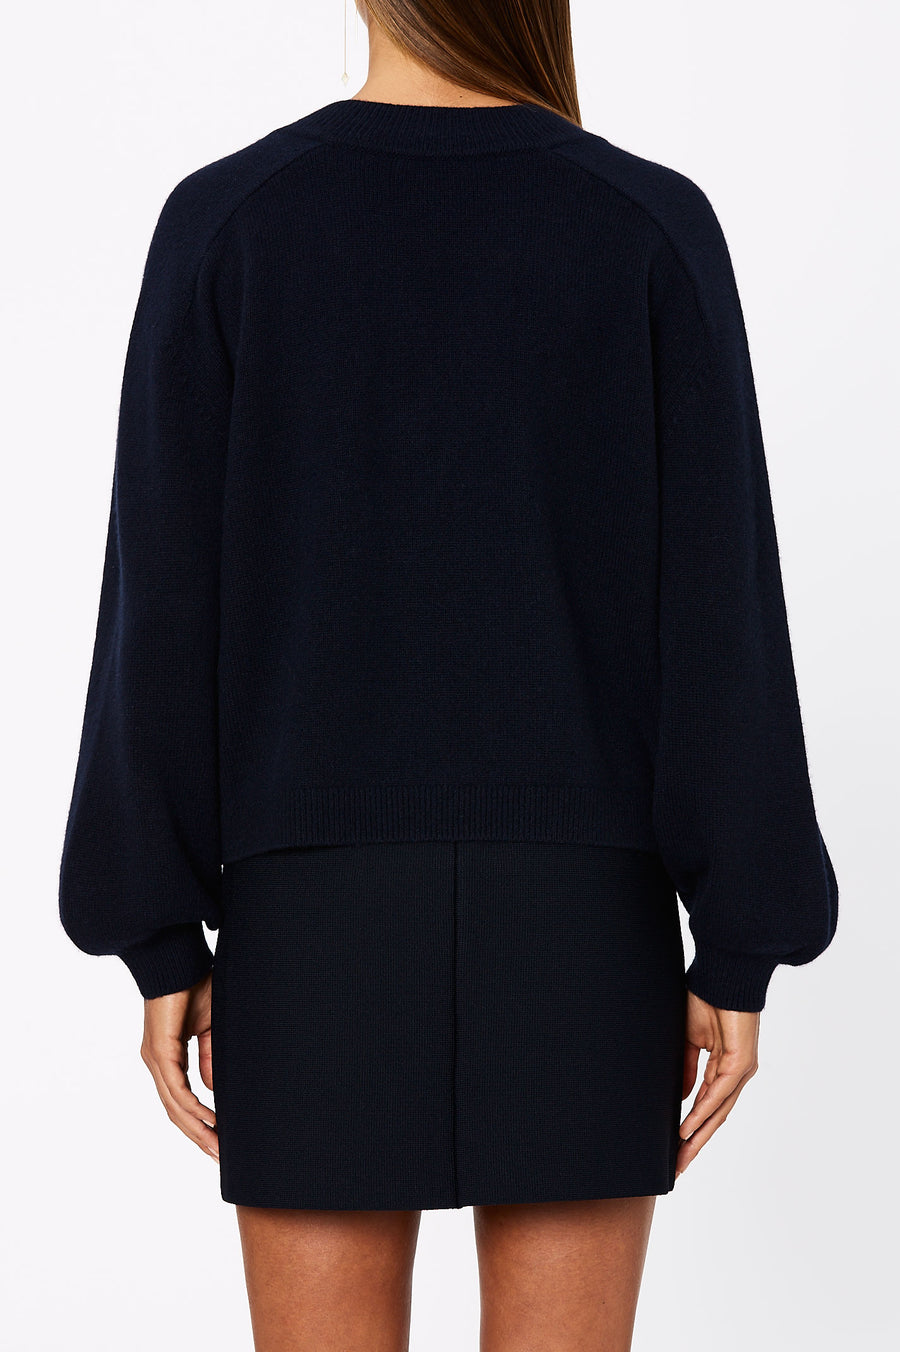 Cashmere V-Nk Sweater 7 Ink - Scanlan Theodore